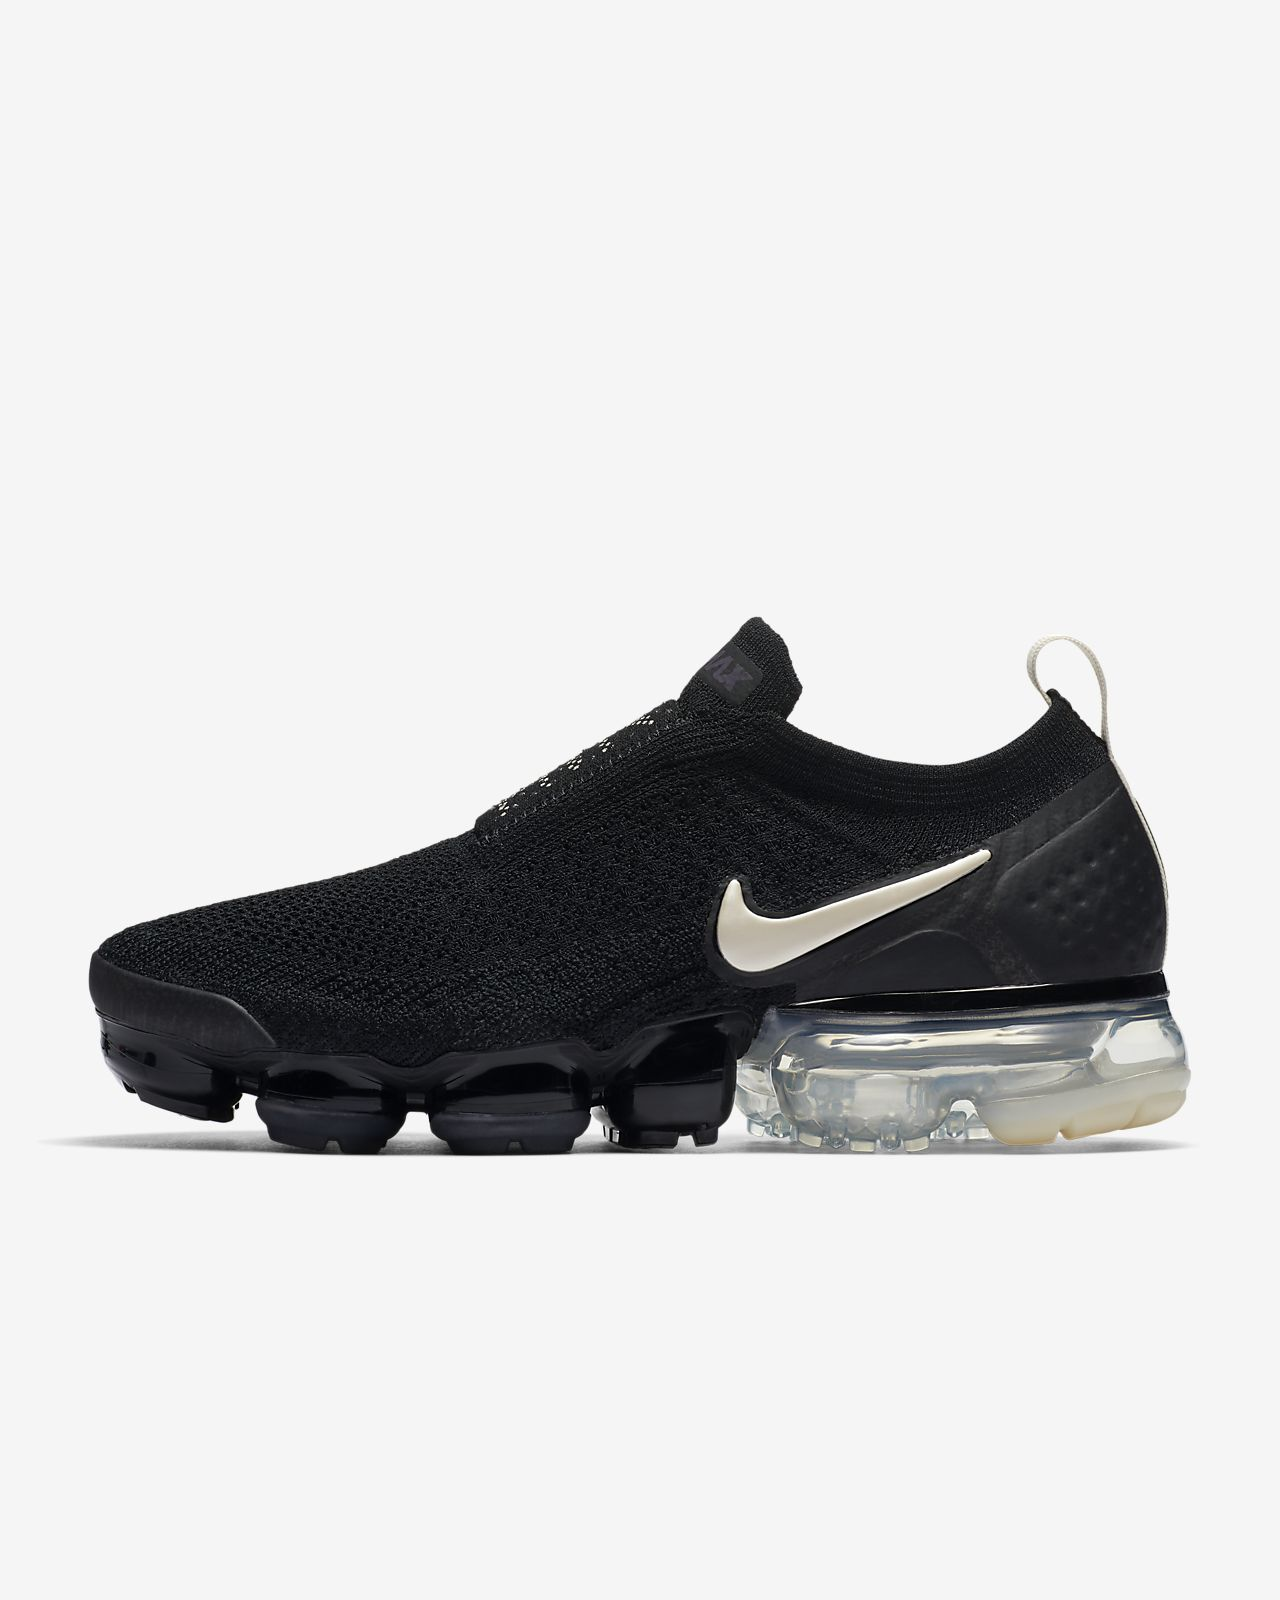 9b802f09ae345 ... shop nike air vapormax flyknit moc 2 womens shoe 688f0 0c4fb